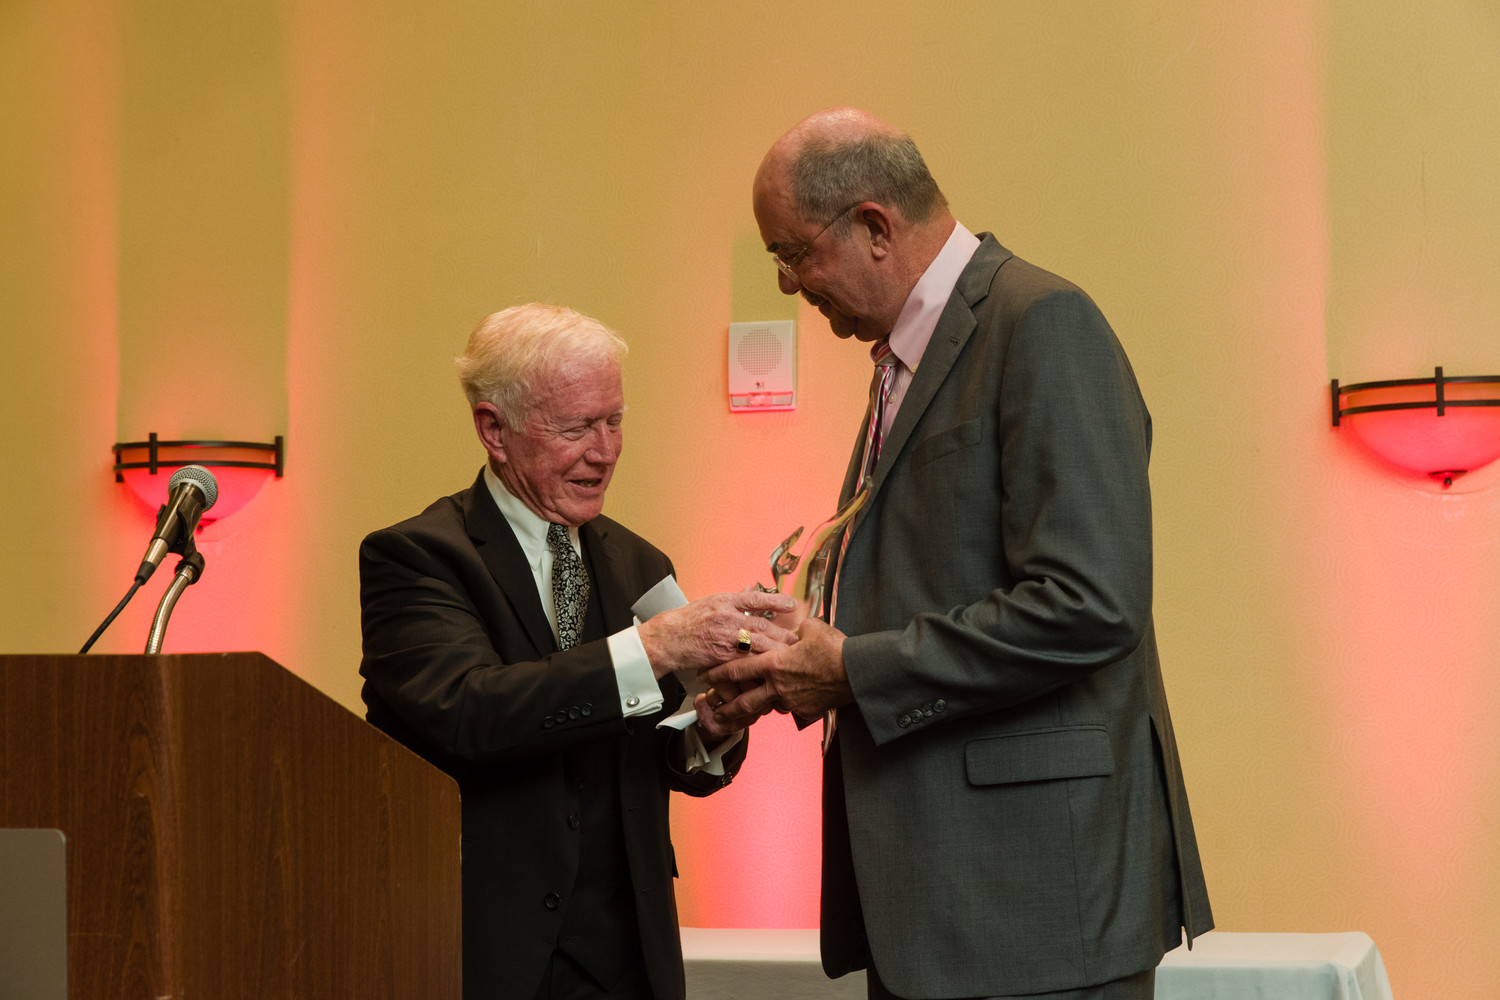 Dr. Stanton Longenecker (right) receives the Distinguished George S. Trotter Founders Award from Dr. George Trotter at the We Care Jacksonville Caring Awards Gala on Aug. 25.